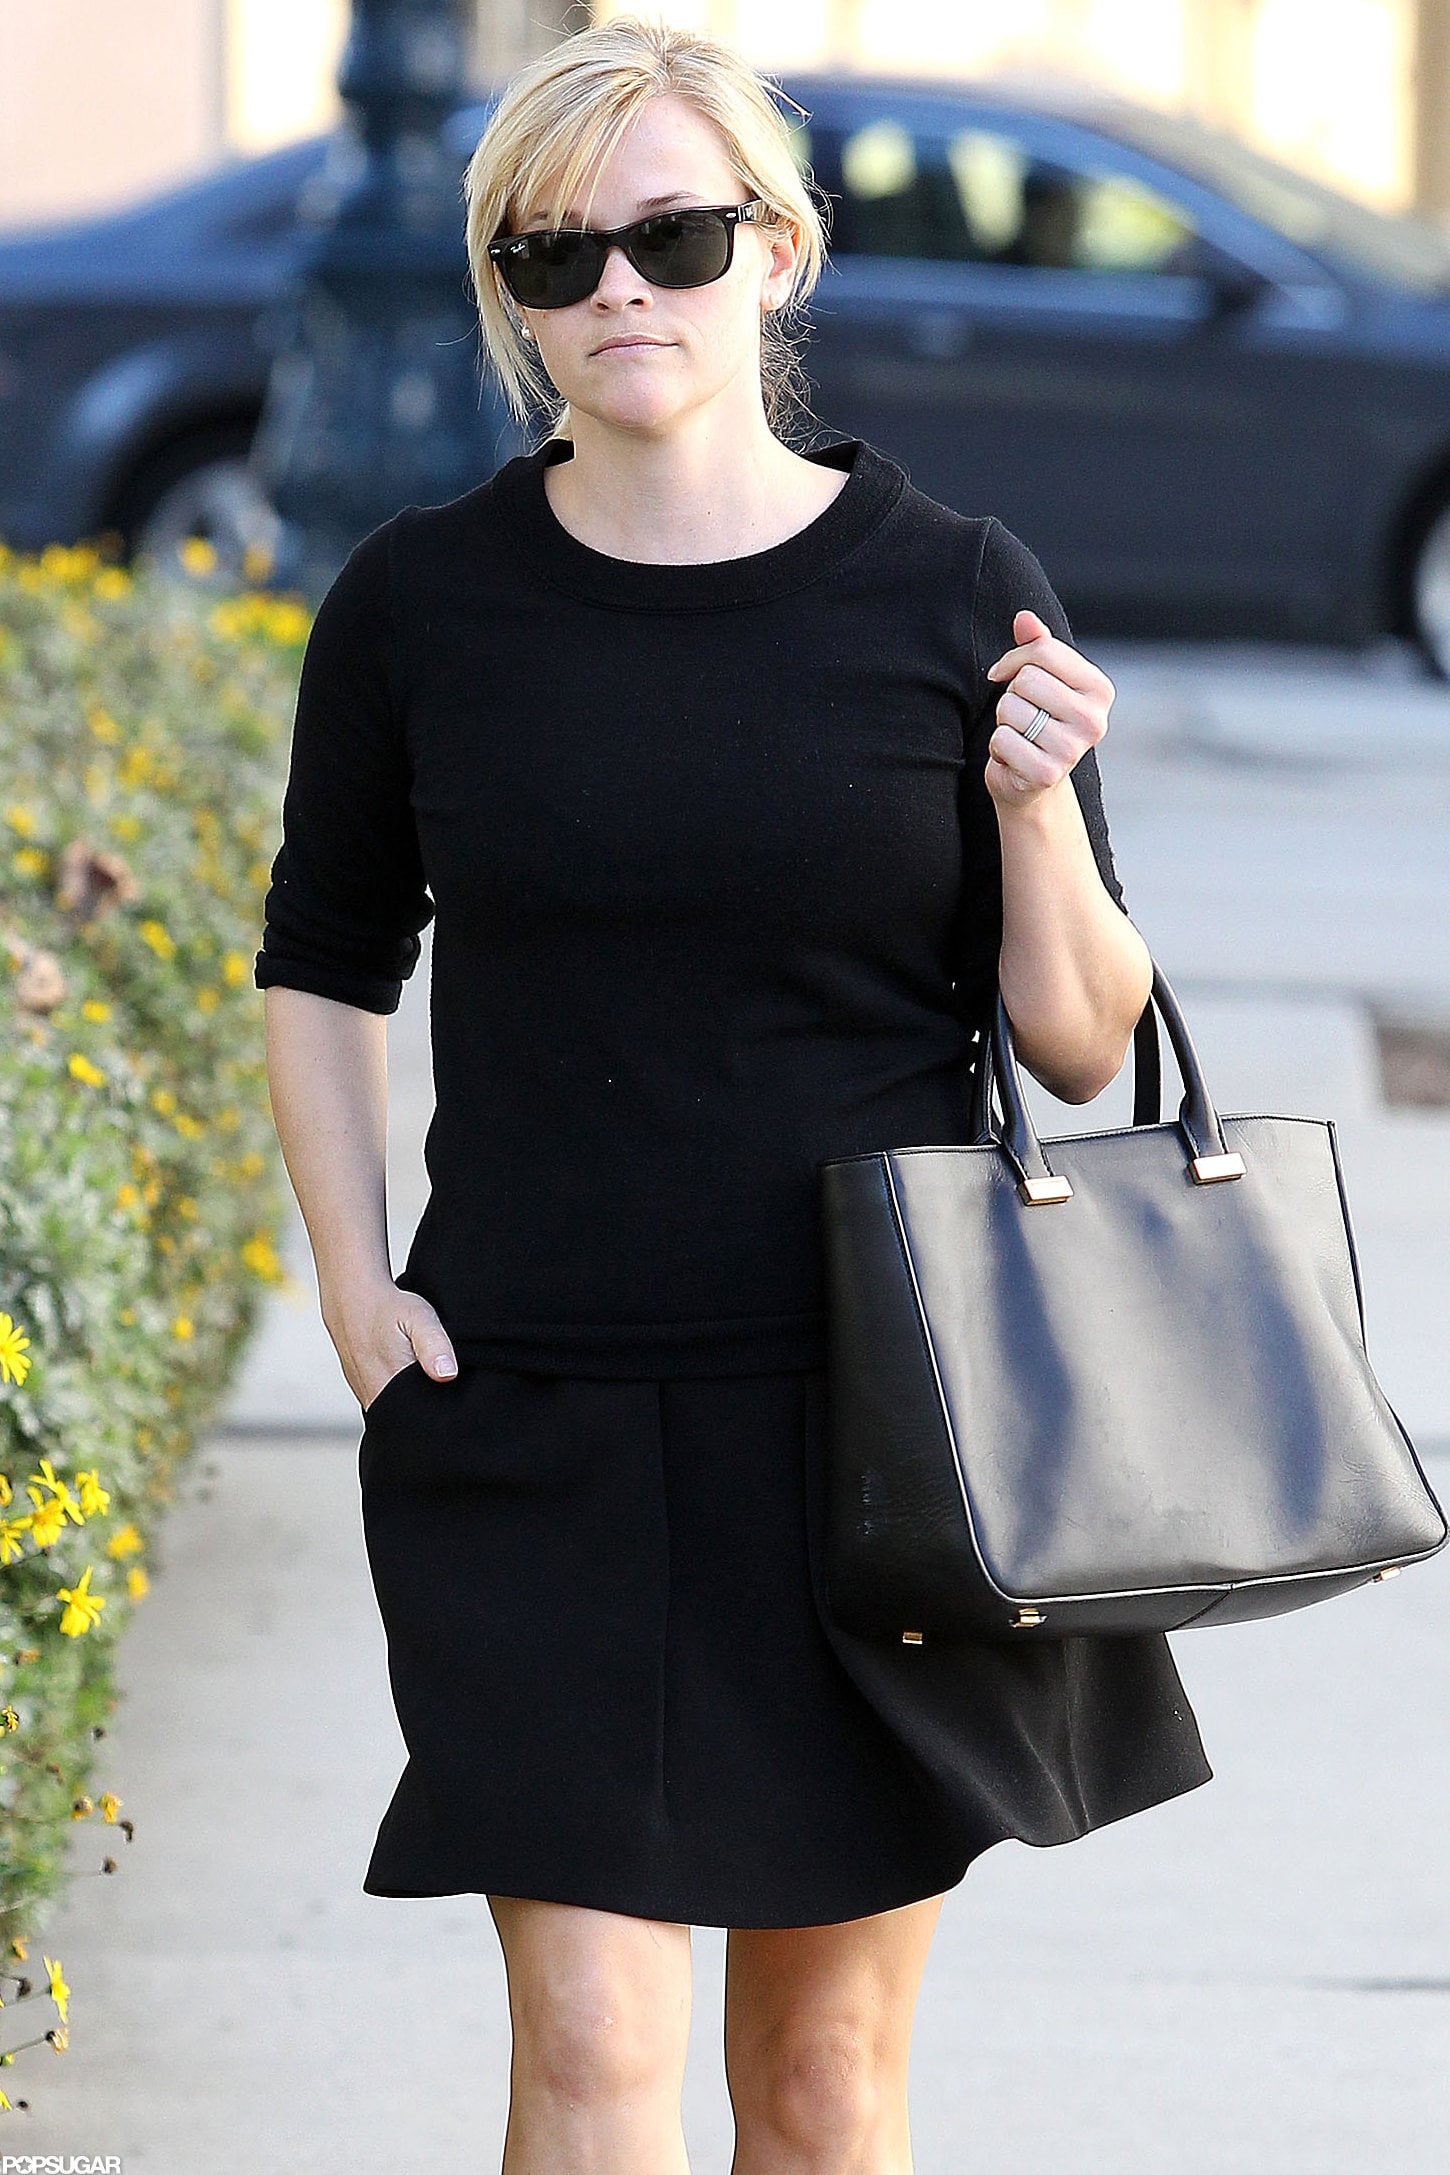 Reese Witherspoon sported black shades.